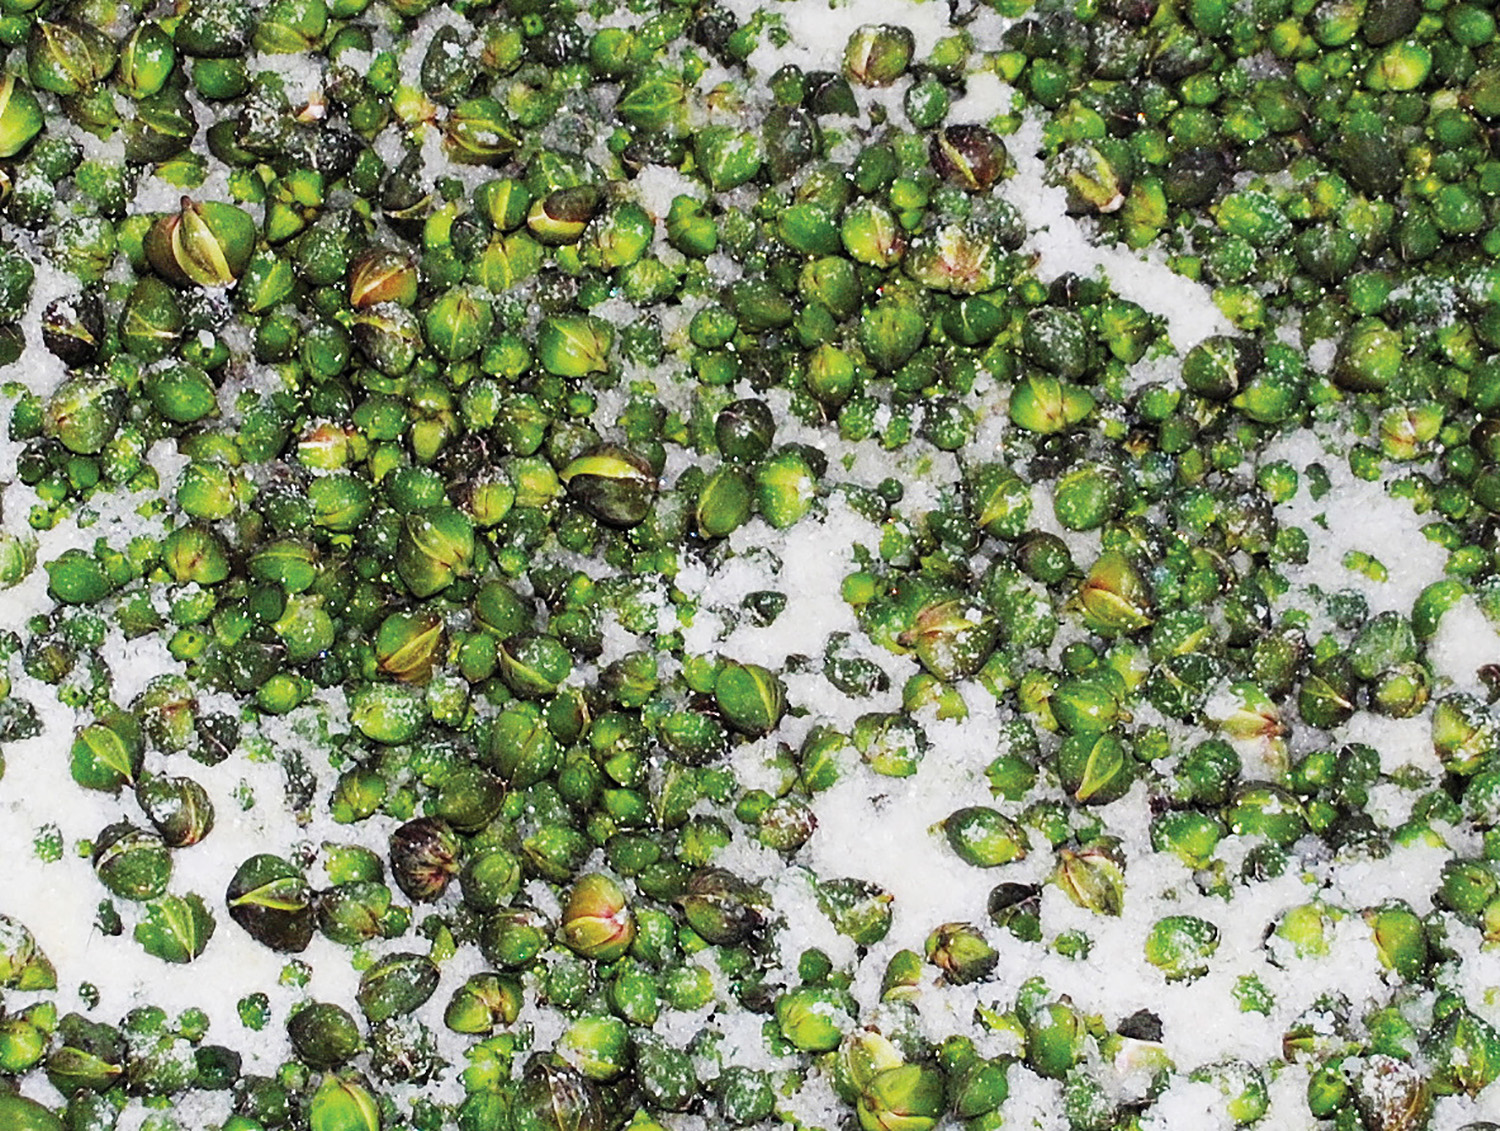 Preserving the capers in salt